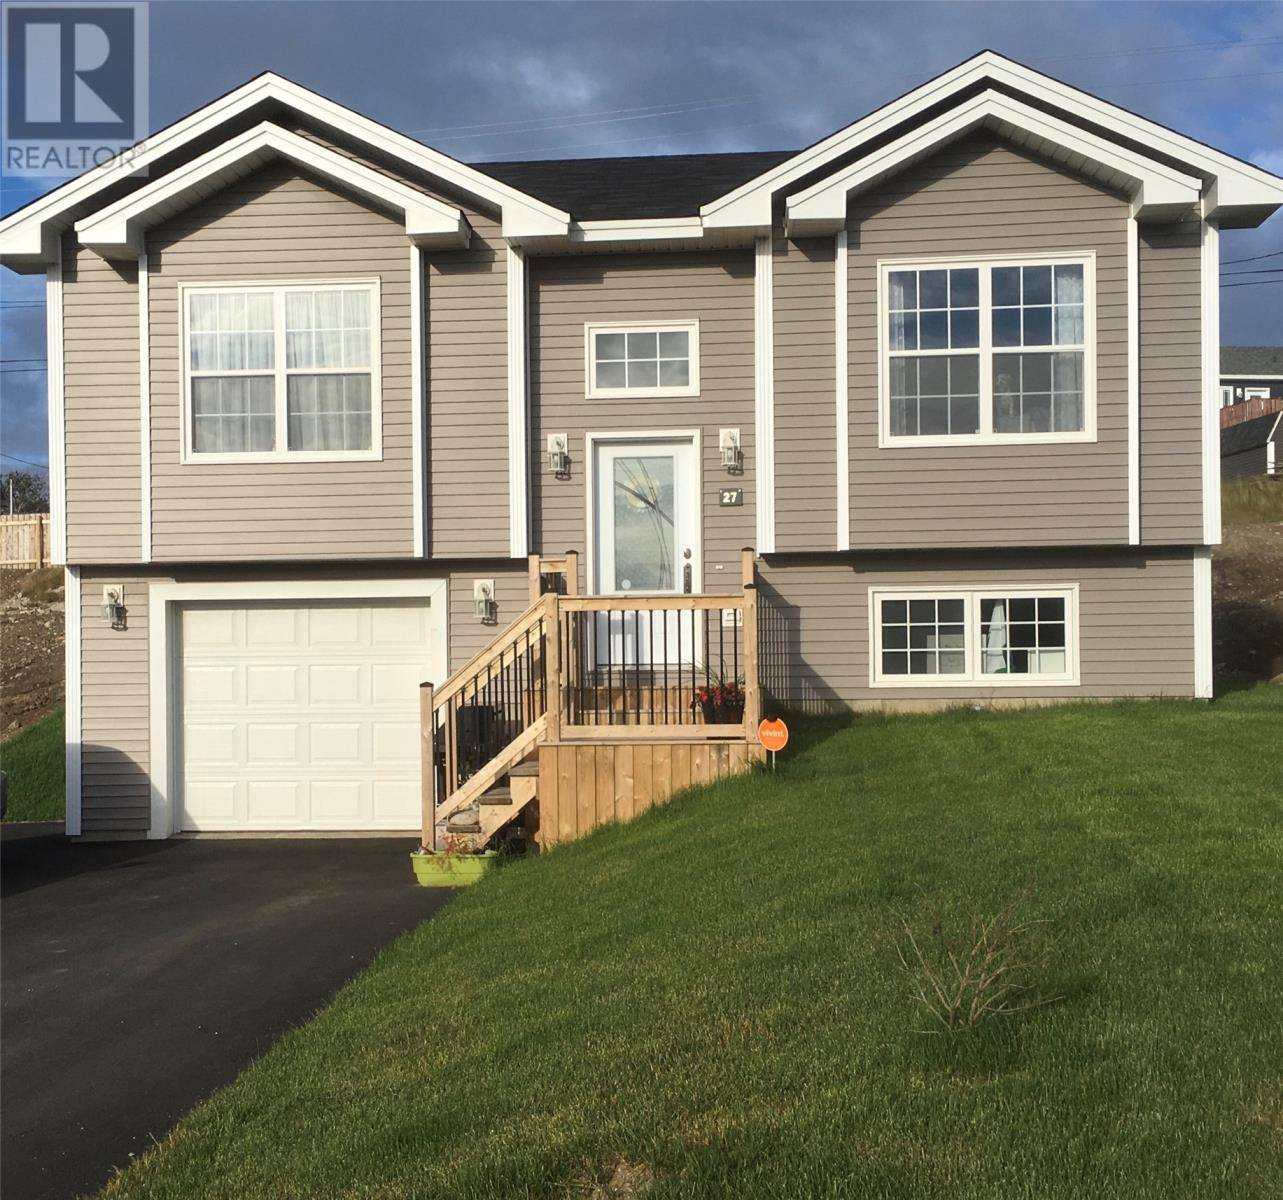 House for sale at 27 Samuel Dr Conception Bay South Newfoundland - MLS: 1200327